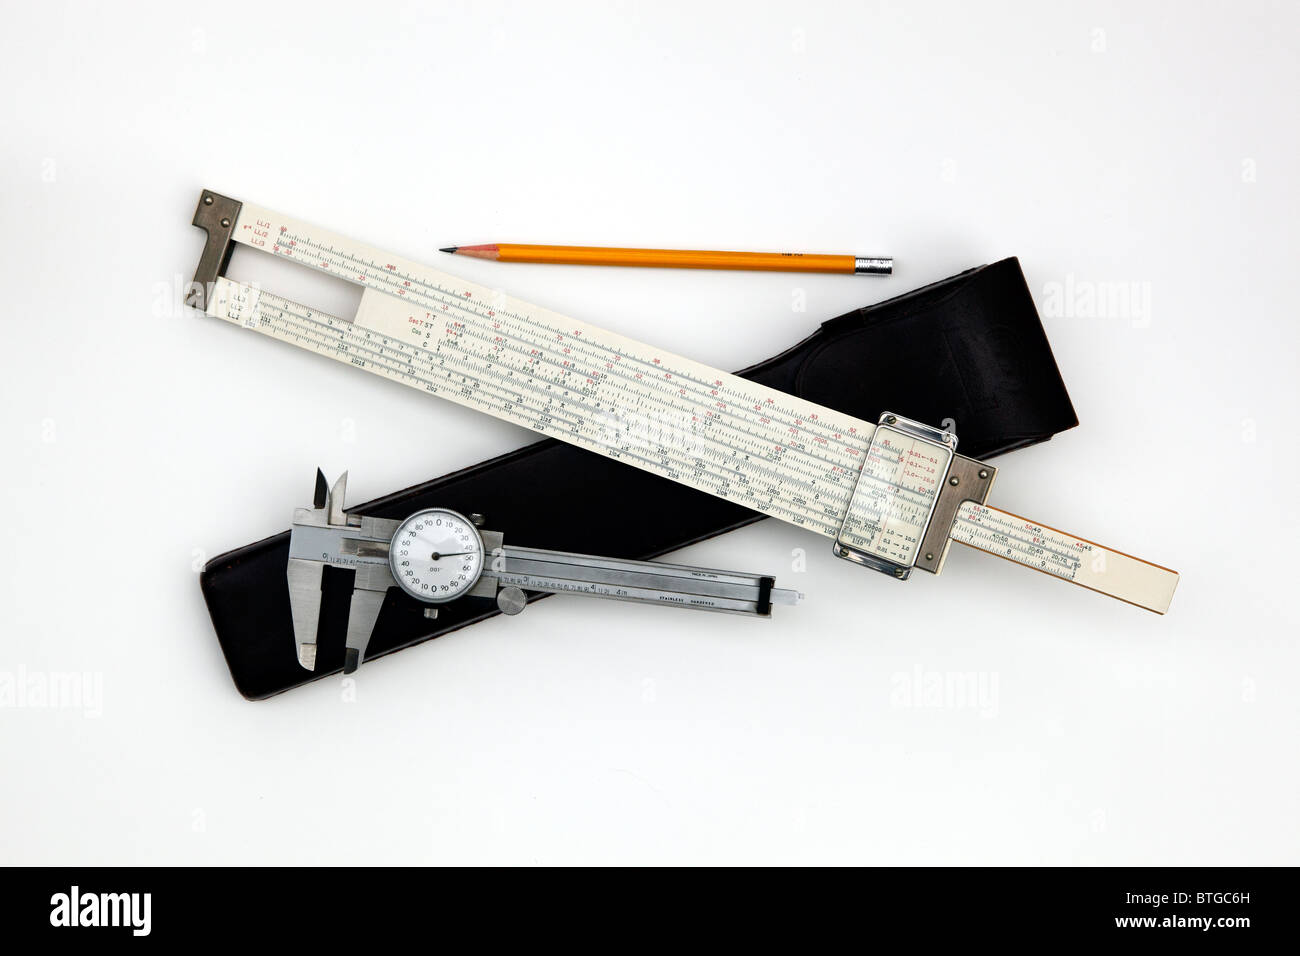 A slide rule, dial caliper and pencil were the pre-computer tools of the trade for many engineers. - Stock Image